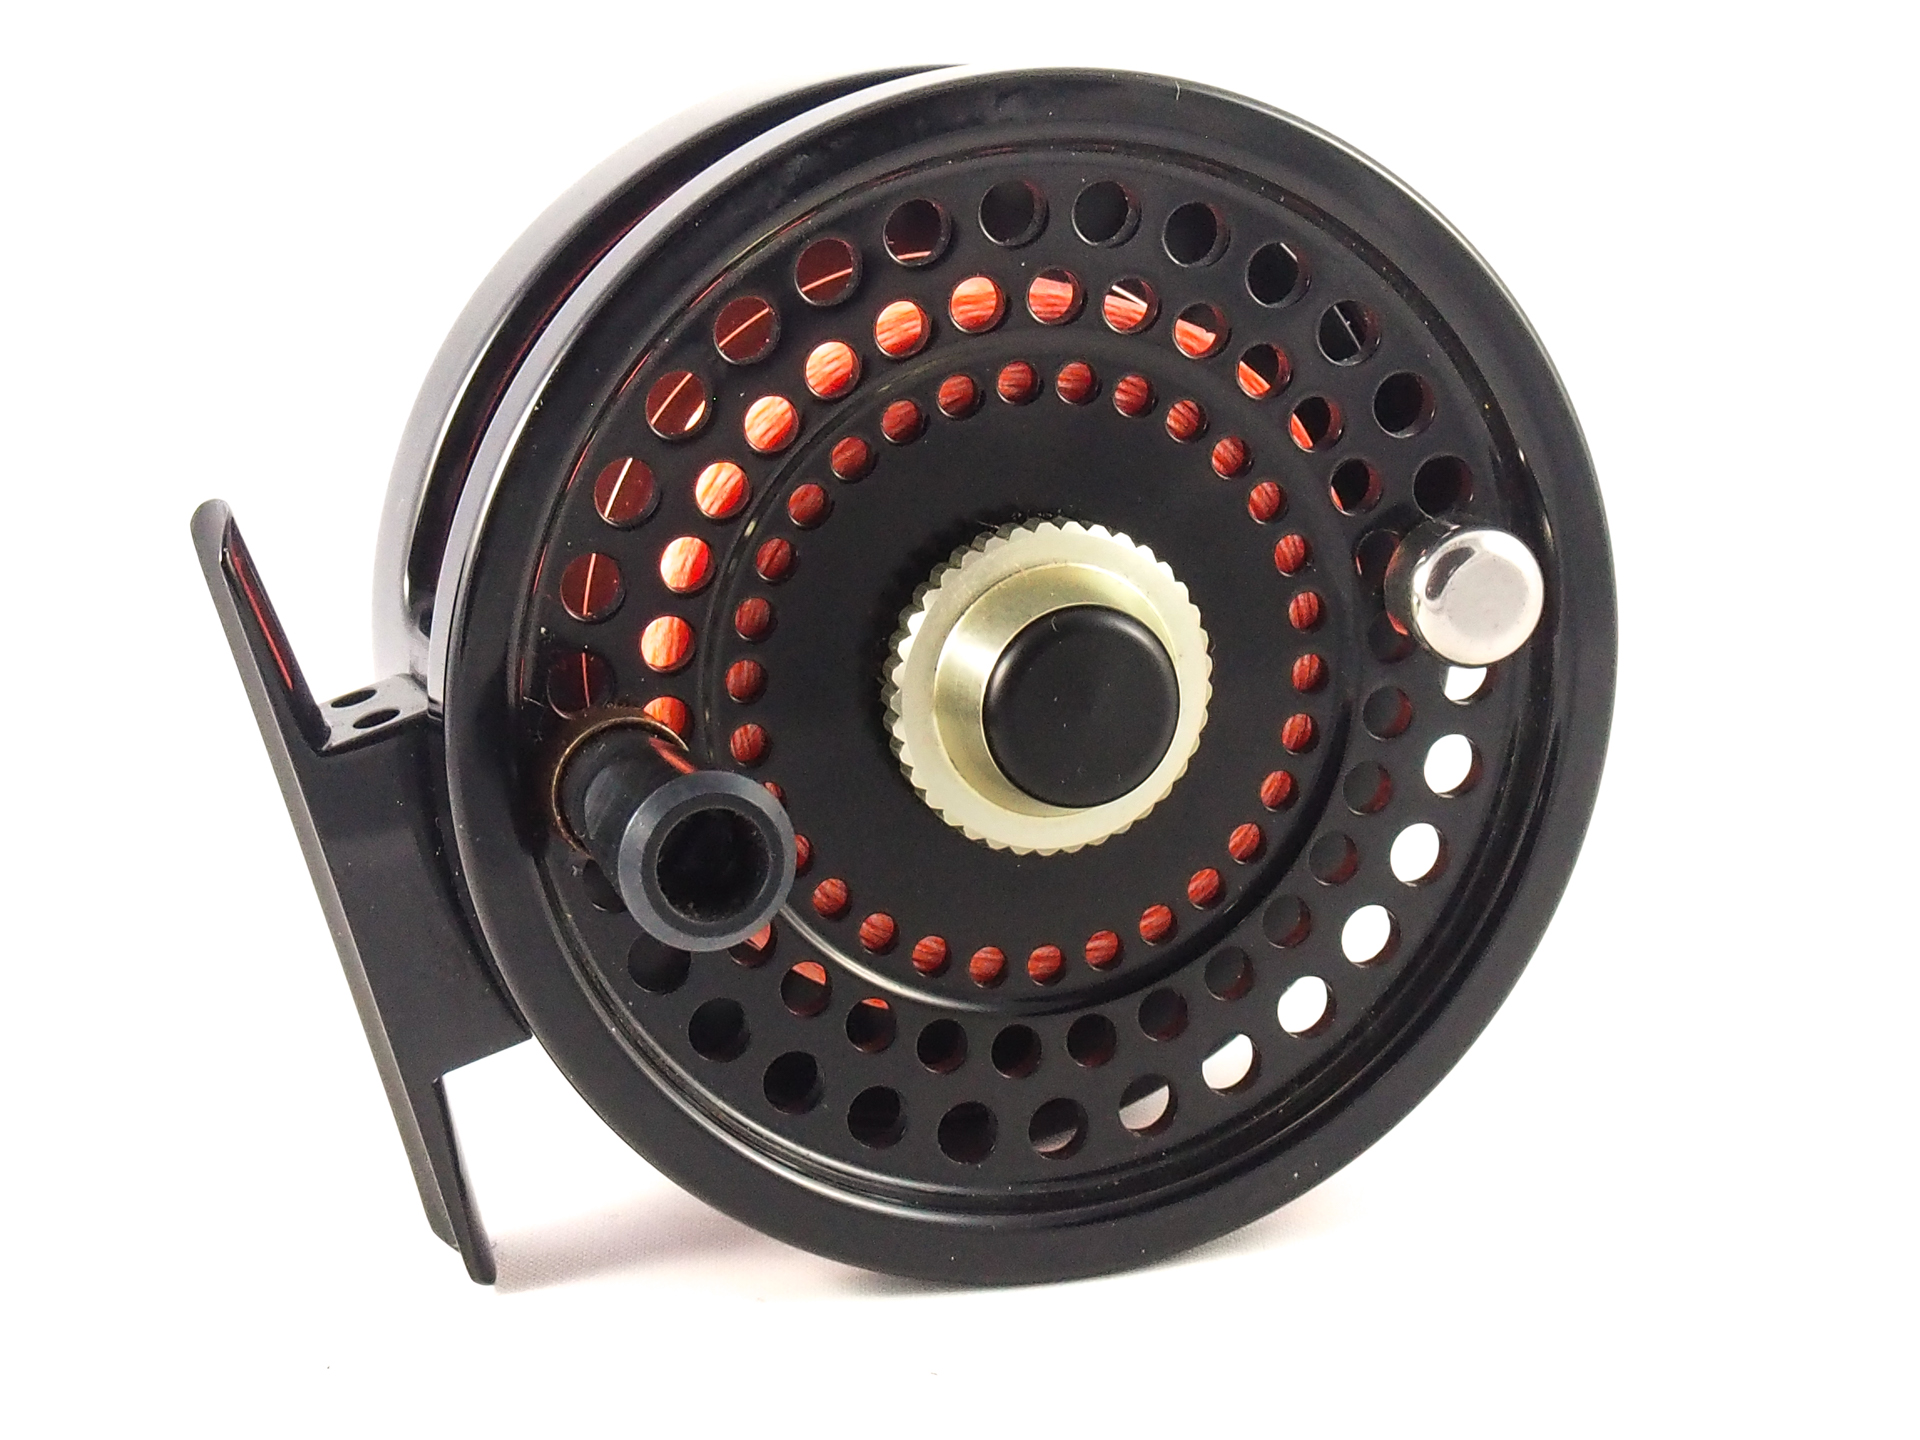 Billy pate salmon fly fishing reel by ted juracsik for Salmon fishing reels